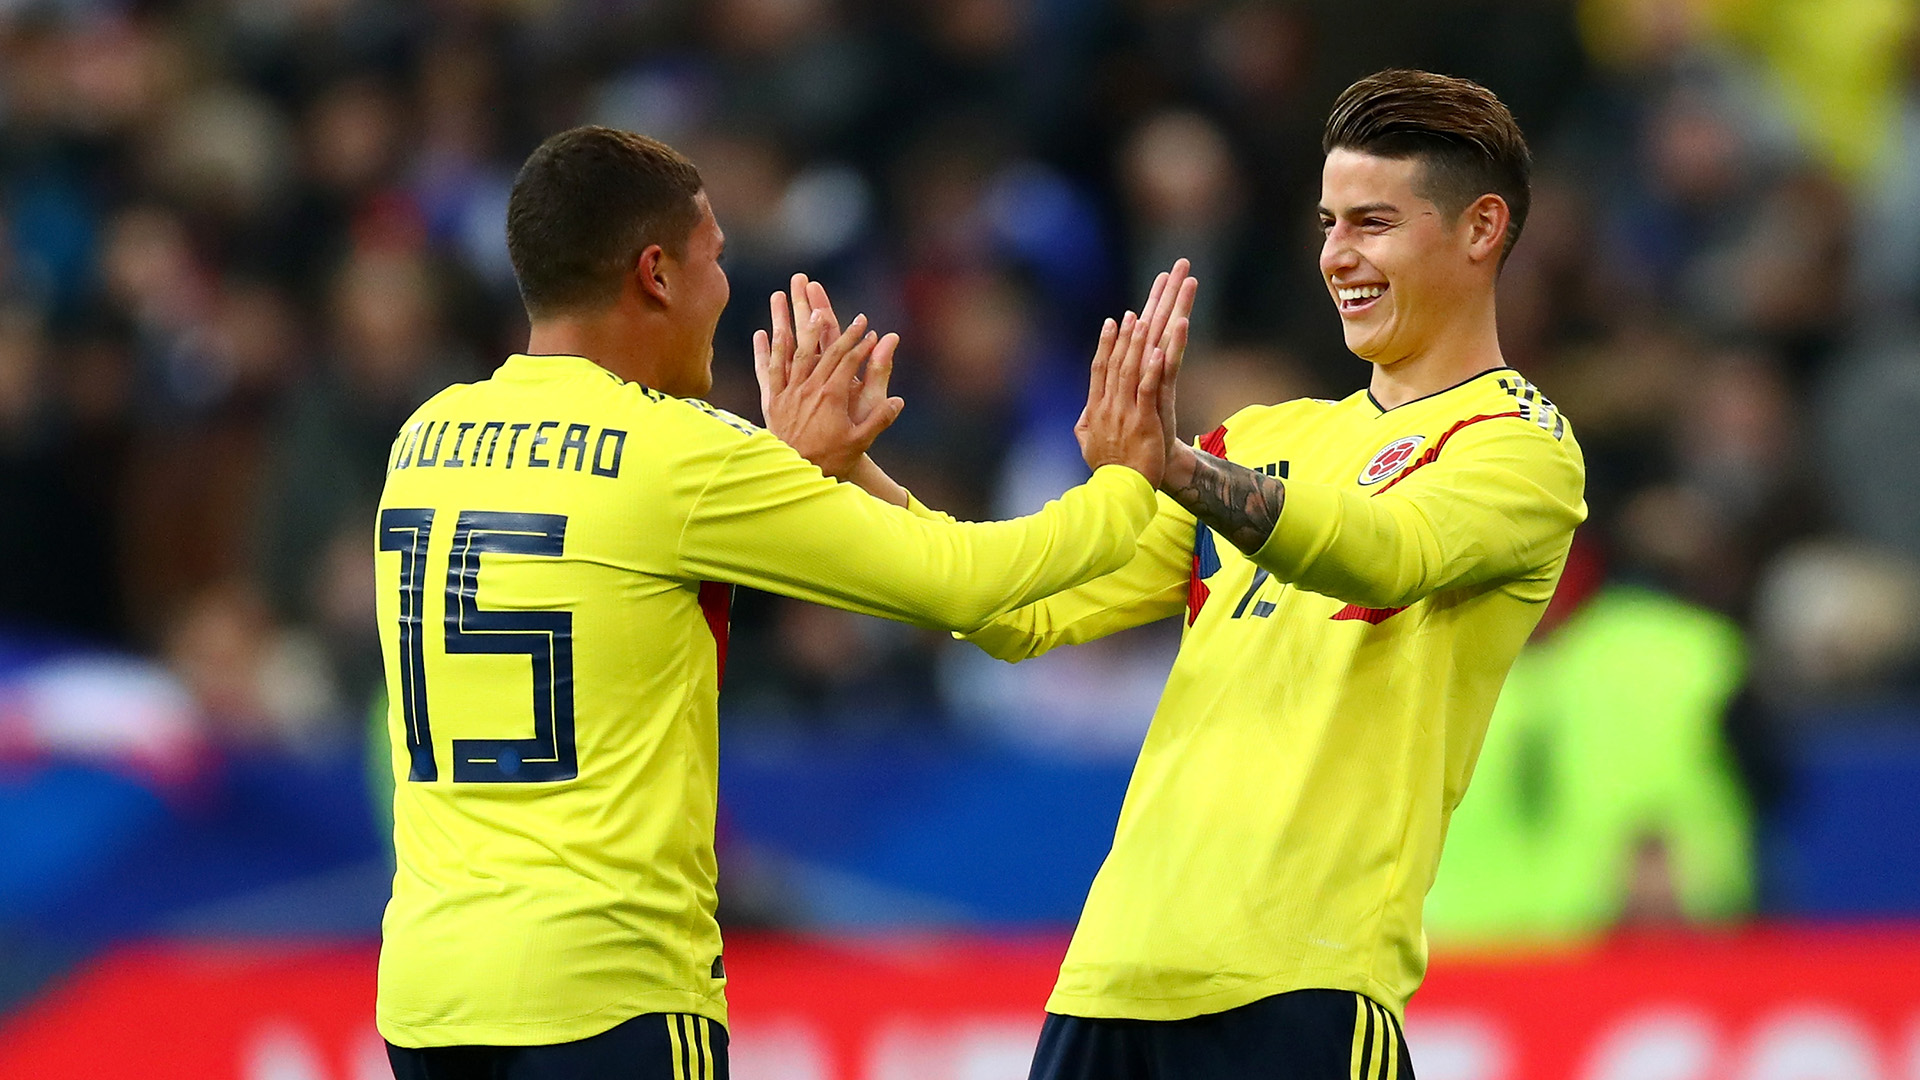 10-man Colombia loses out to Japan in World Cup opener